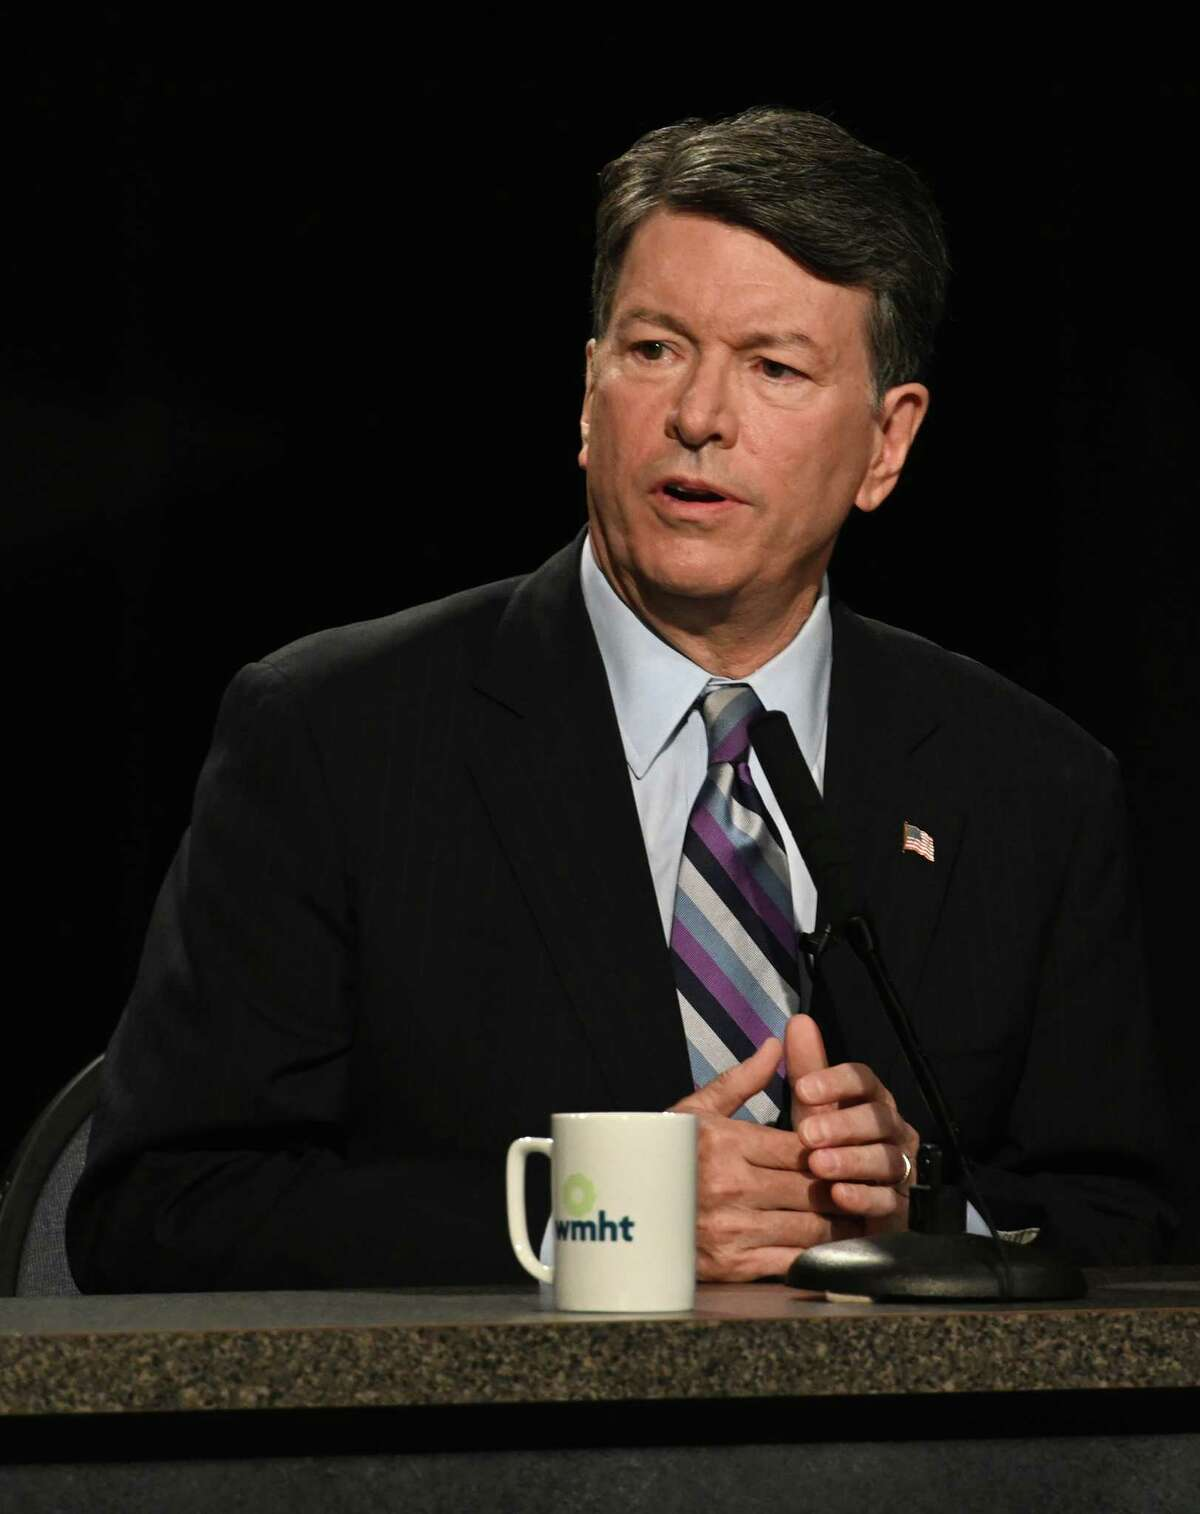 Candidate for the19th Congressional District incumbent John Faso speaks during the debate at the studios of WMHT TV Friday Oct.19, 2018 in East Greenbush, N.Y. (Skip Dickstein/Times Union)